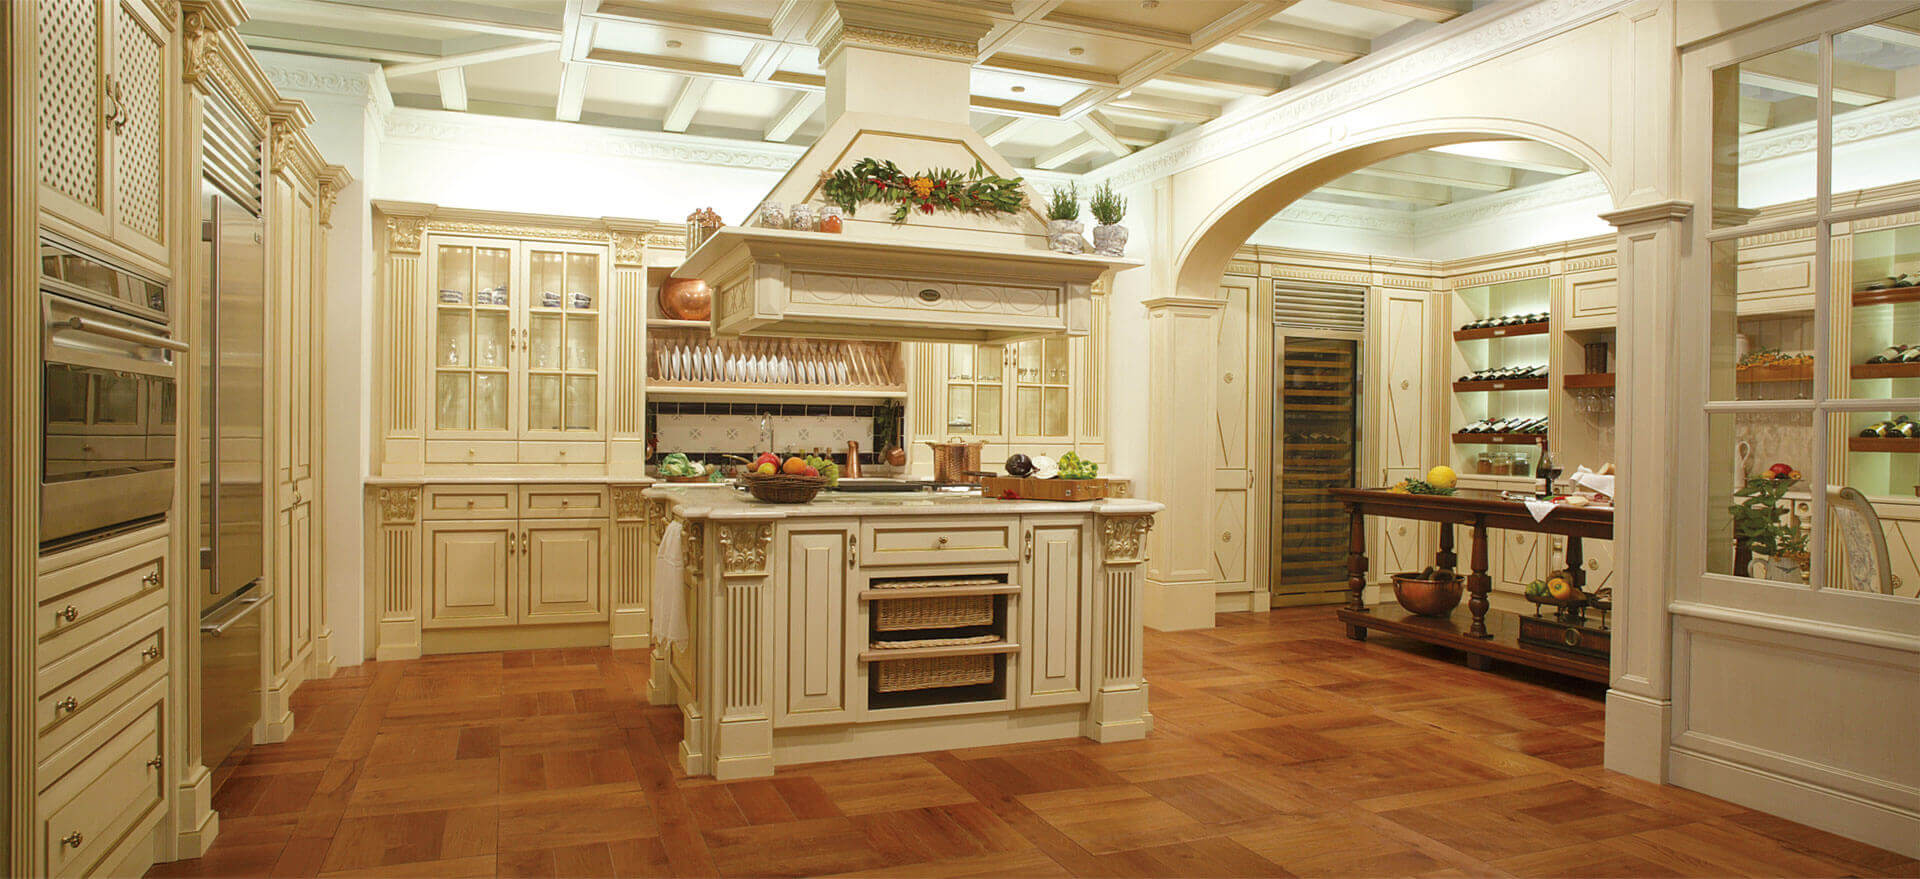 Top 65 luxury kitchen design ideas exclusive gallery for Search kitchen designs